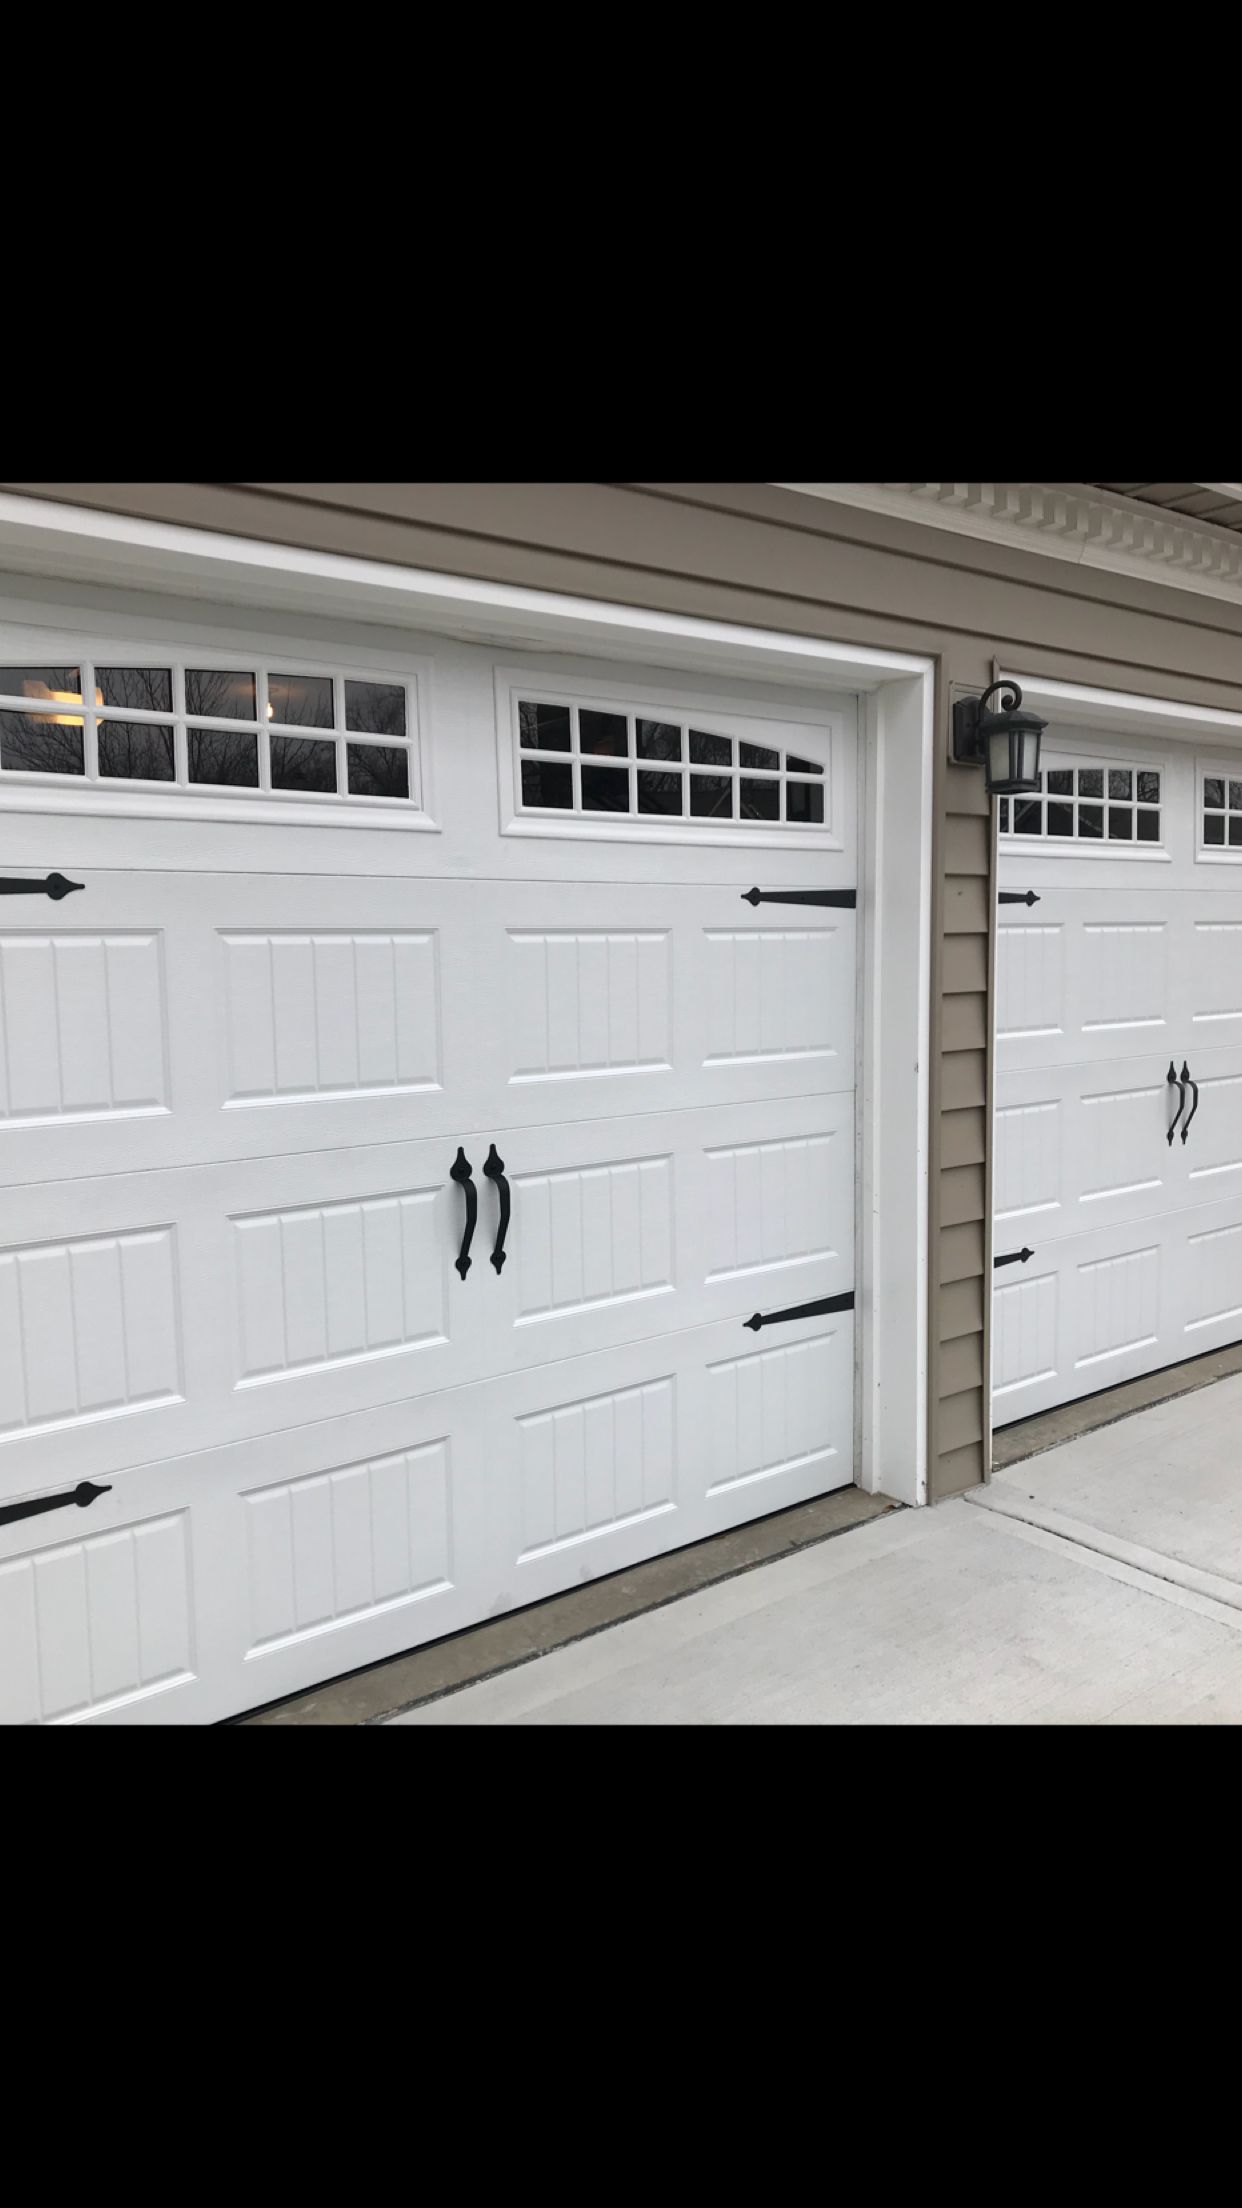 Beautiful White Carriage Style Garage Door With Decorative Hardware